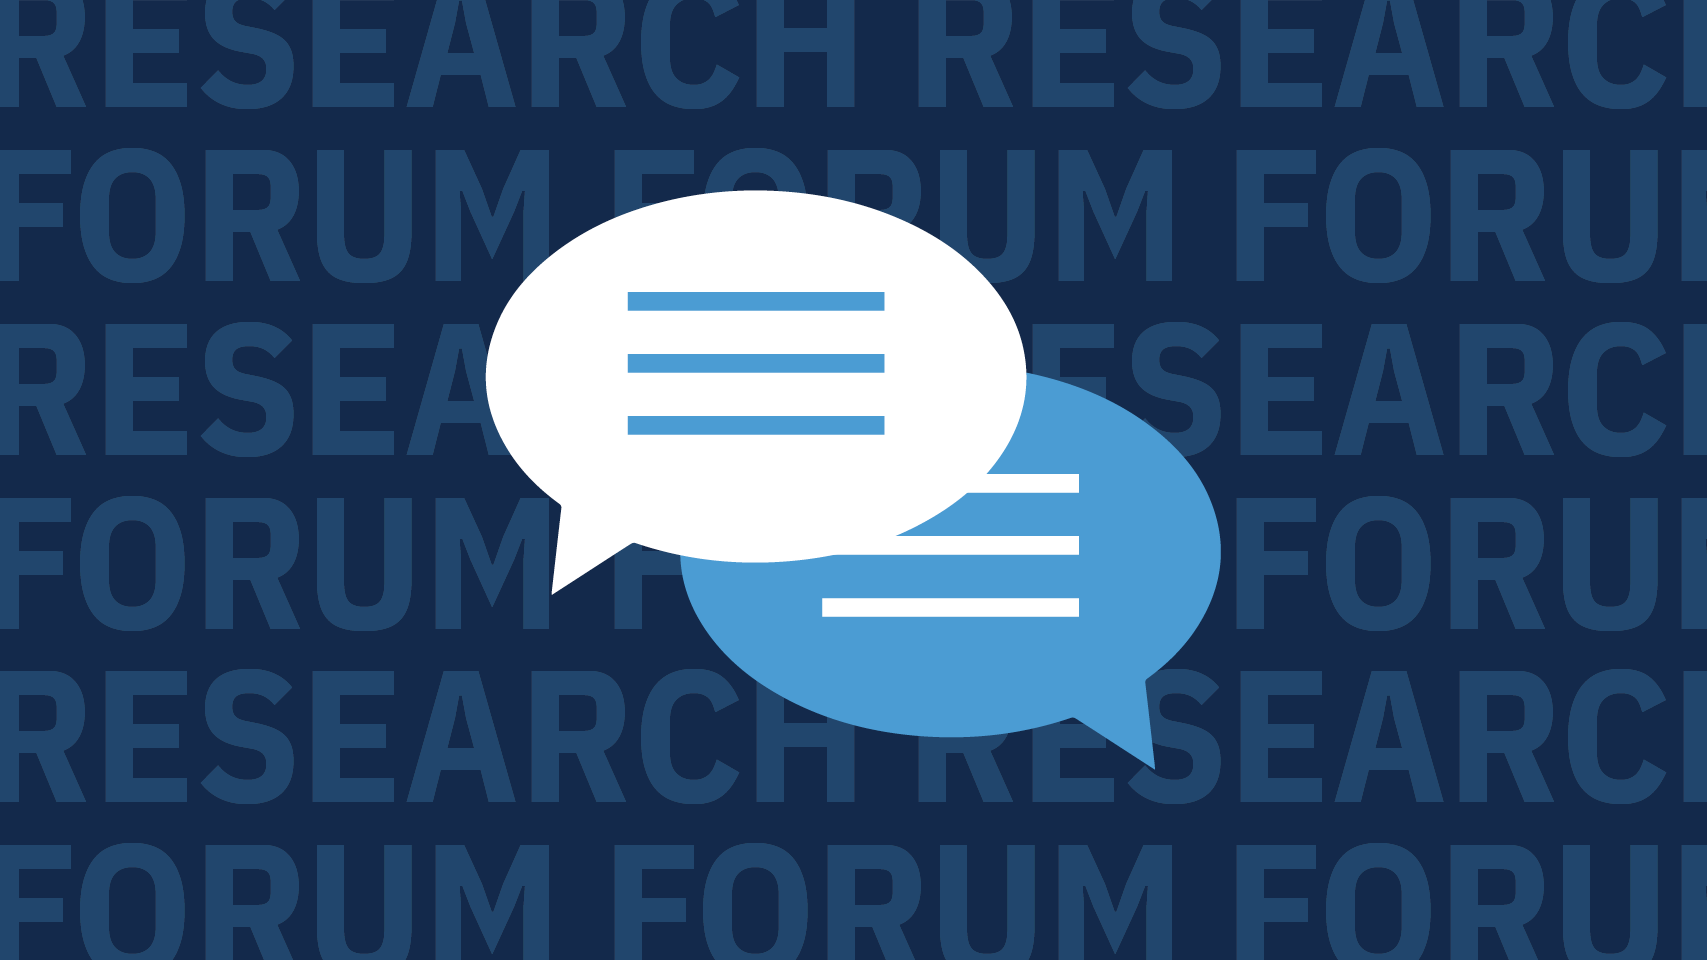 Wilson Research Forum